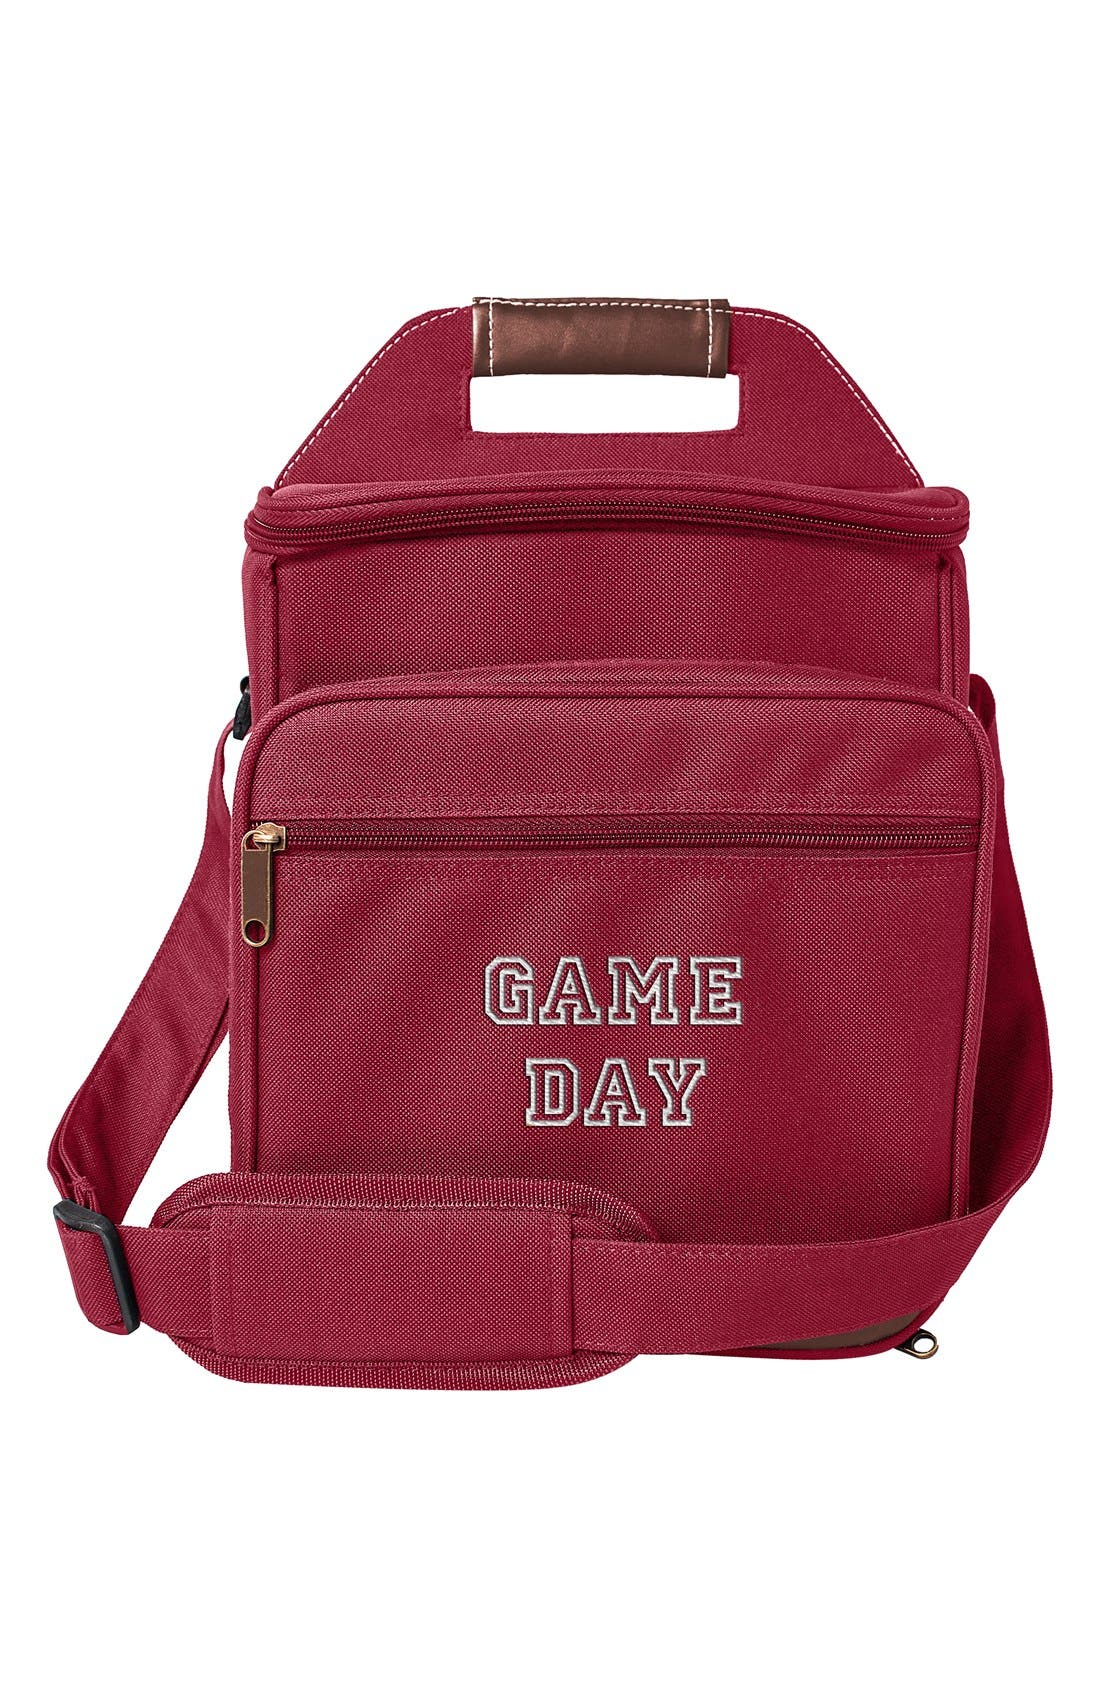 'Game Day' Picnic Cooler Set,                             Main thumbnail 1, color,                             Red